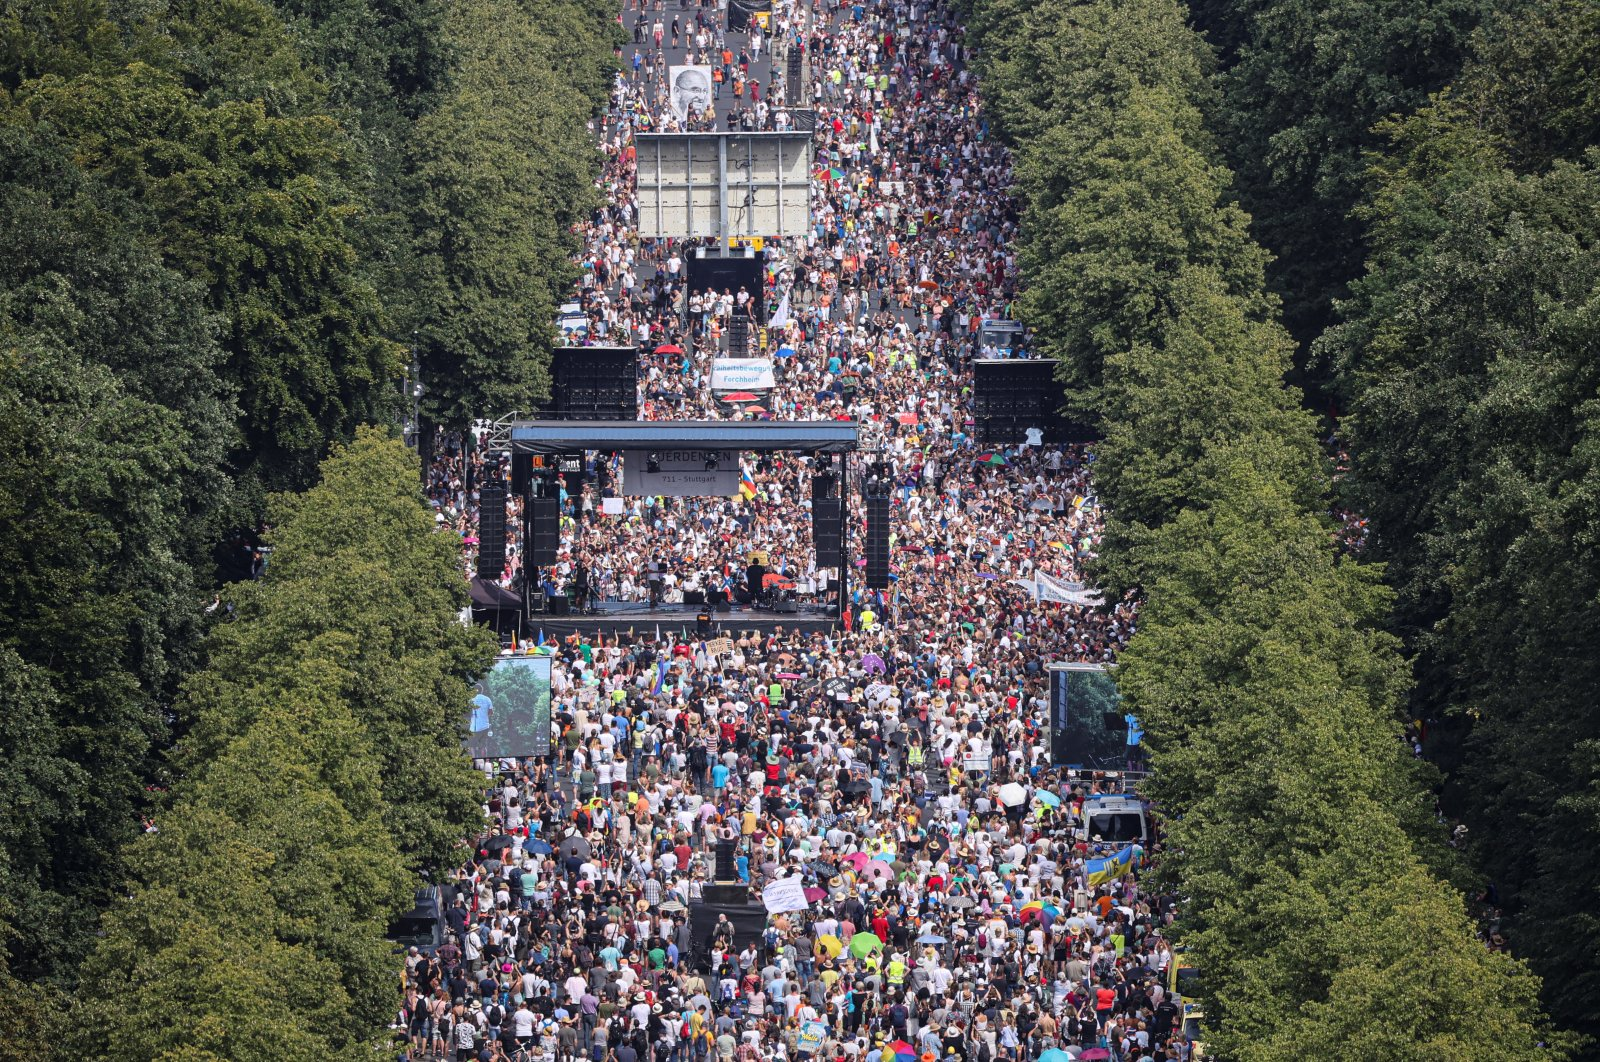 A general view shows a protest near the Brandenburg Gate against the government's restrictions amid the coronavirus disease (COVID-19) outbreak, in Berlin, Germany, August 1, 2020. (REUTERS Photo)